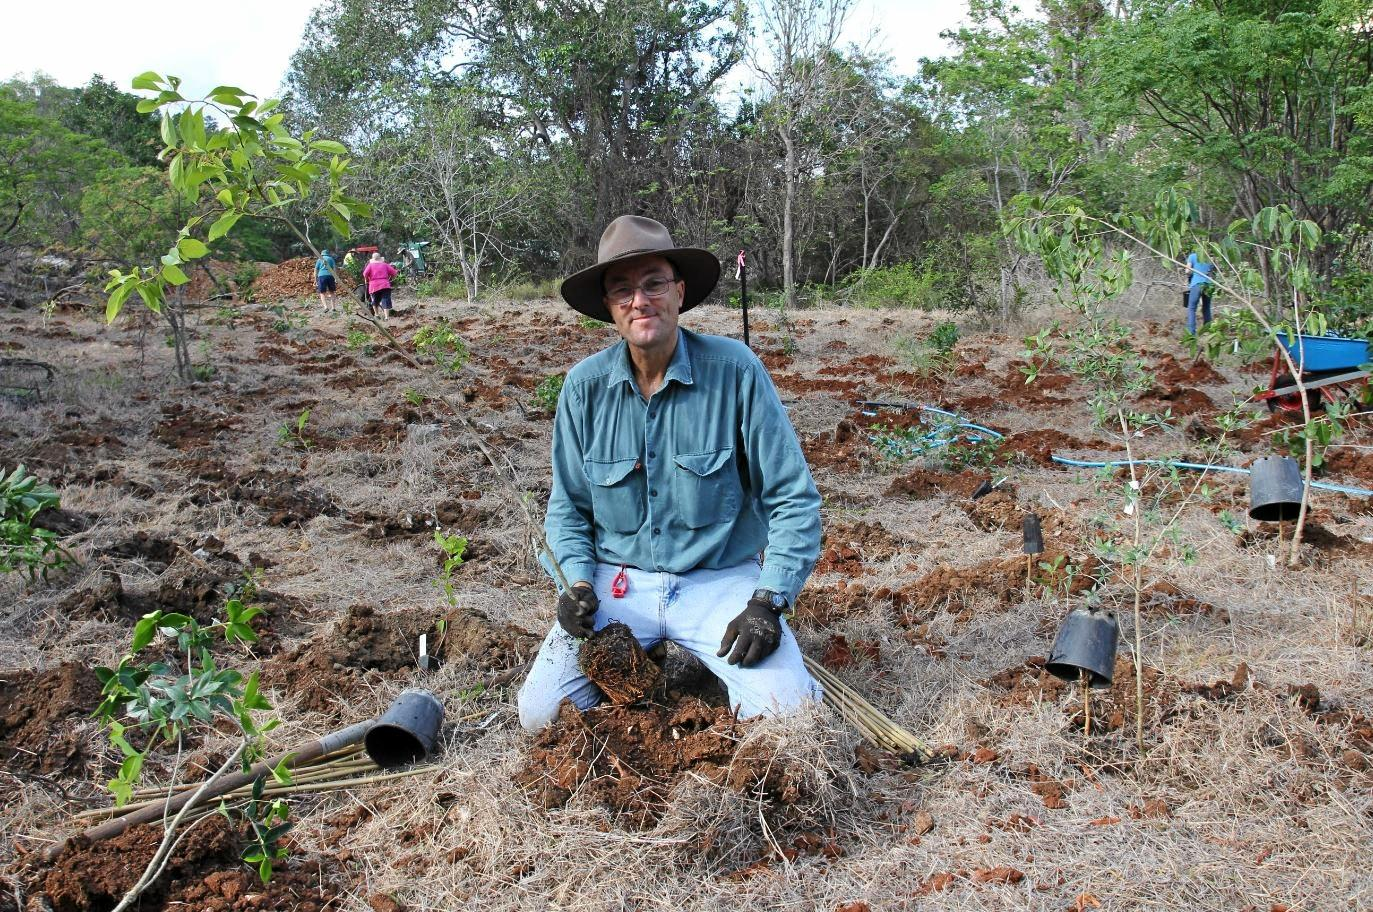 TREE PLANTER: Kelvin Wykes participated in the successful 20 Million Trees Project at Mt Etna with First Turkey up next.